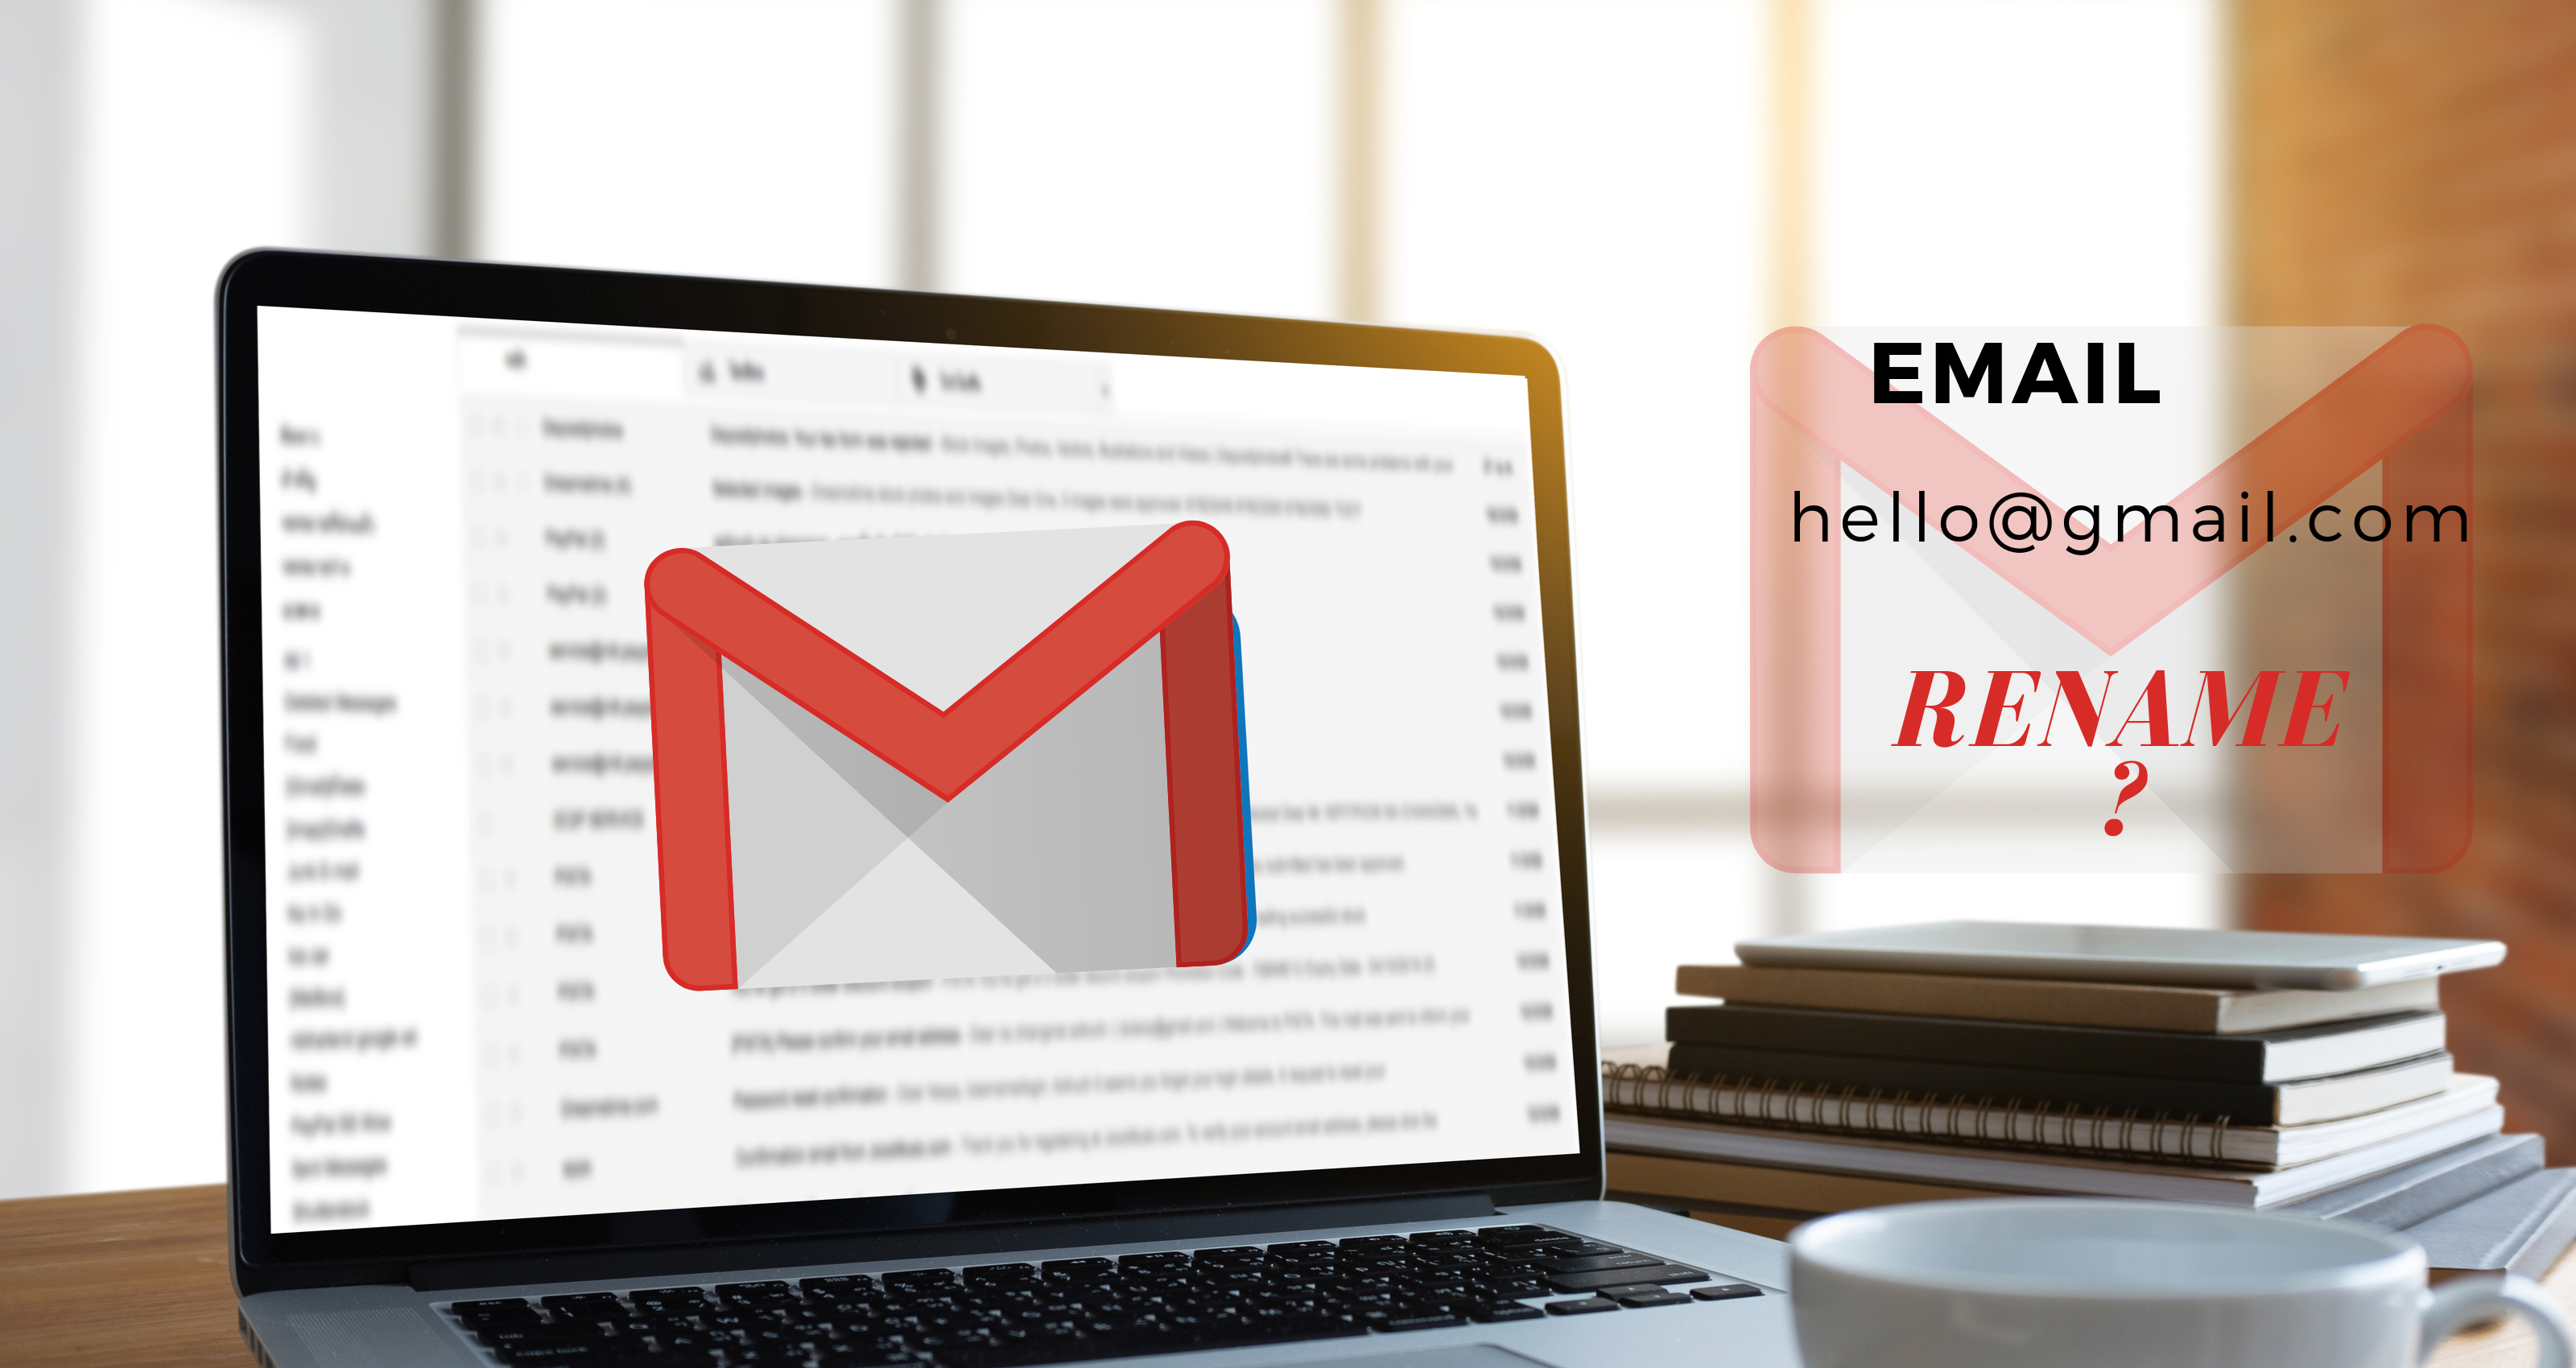 How can we Rename a gsuite email address